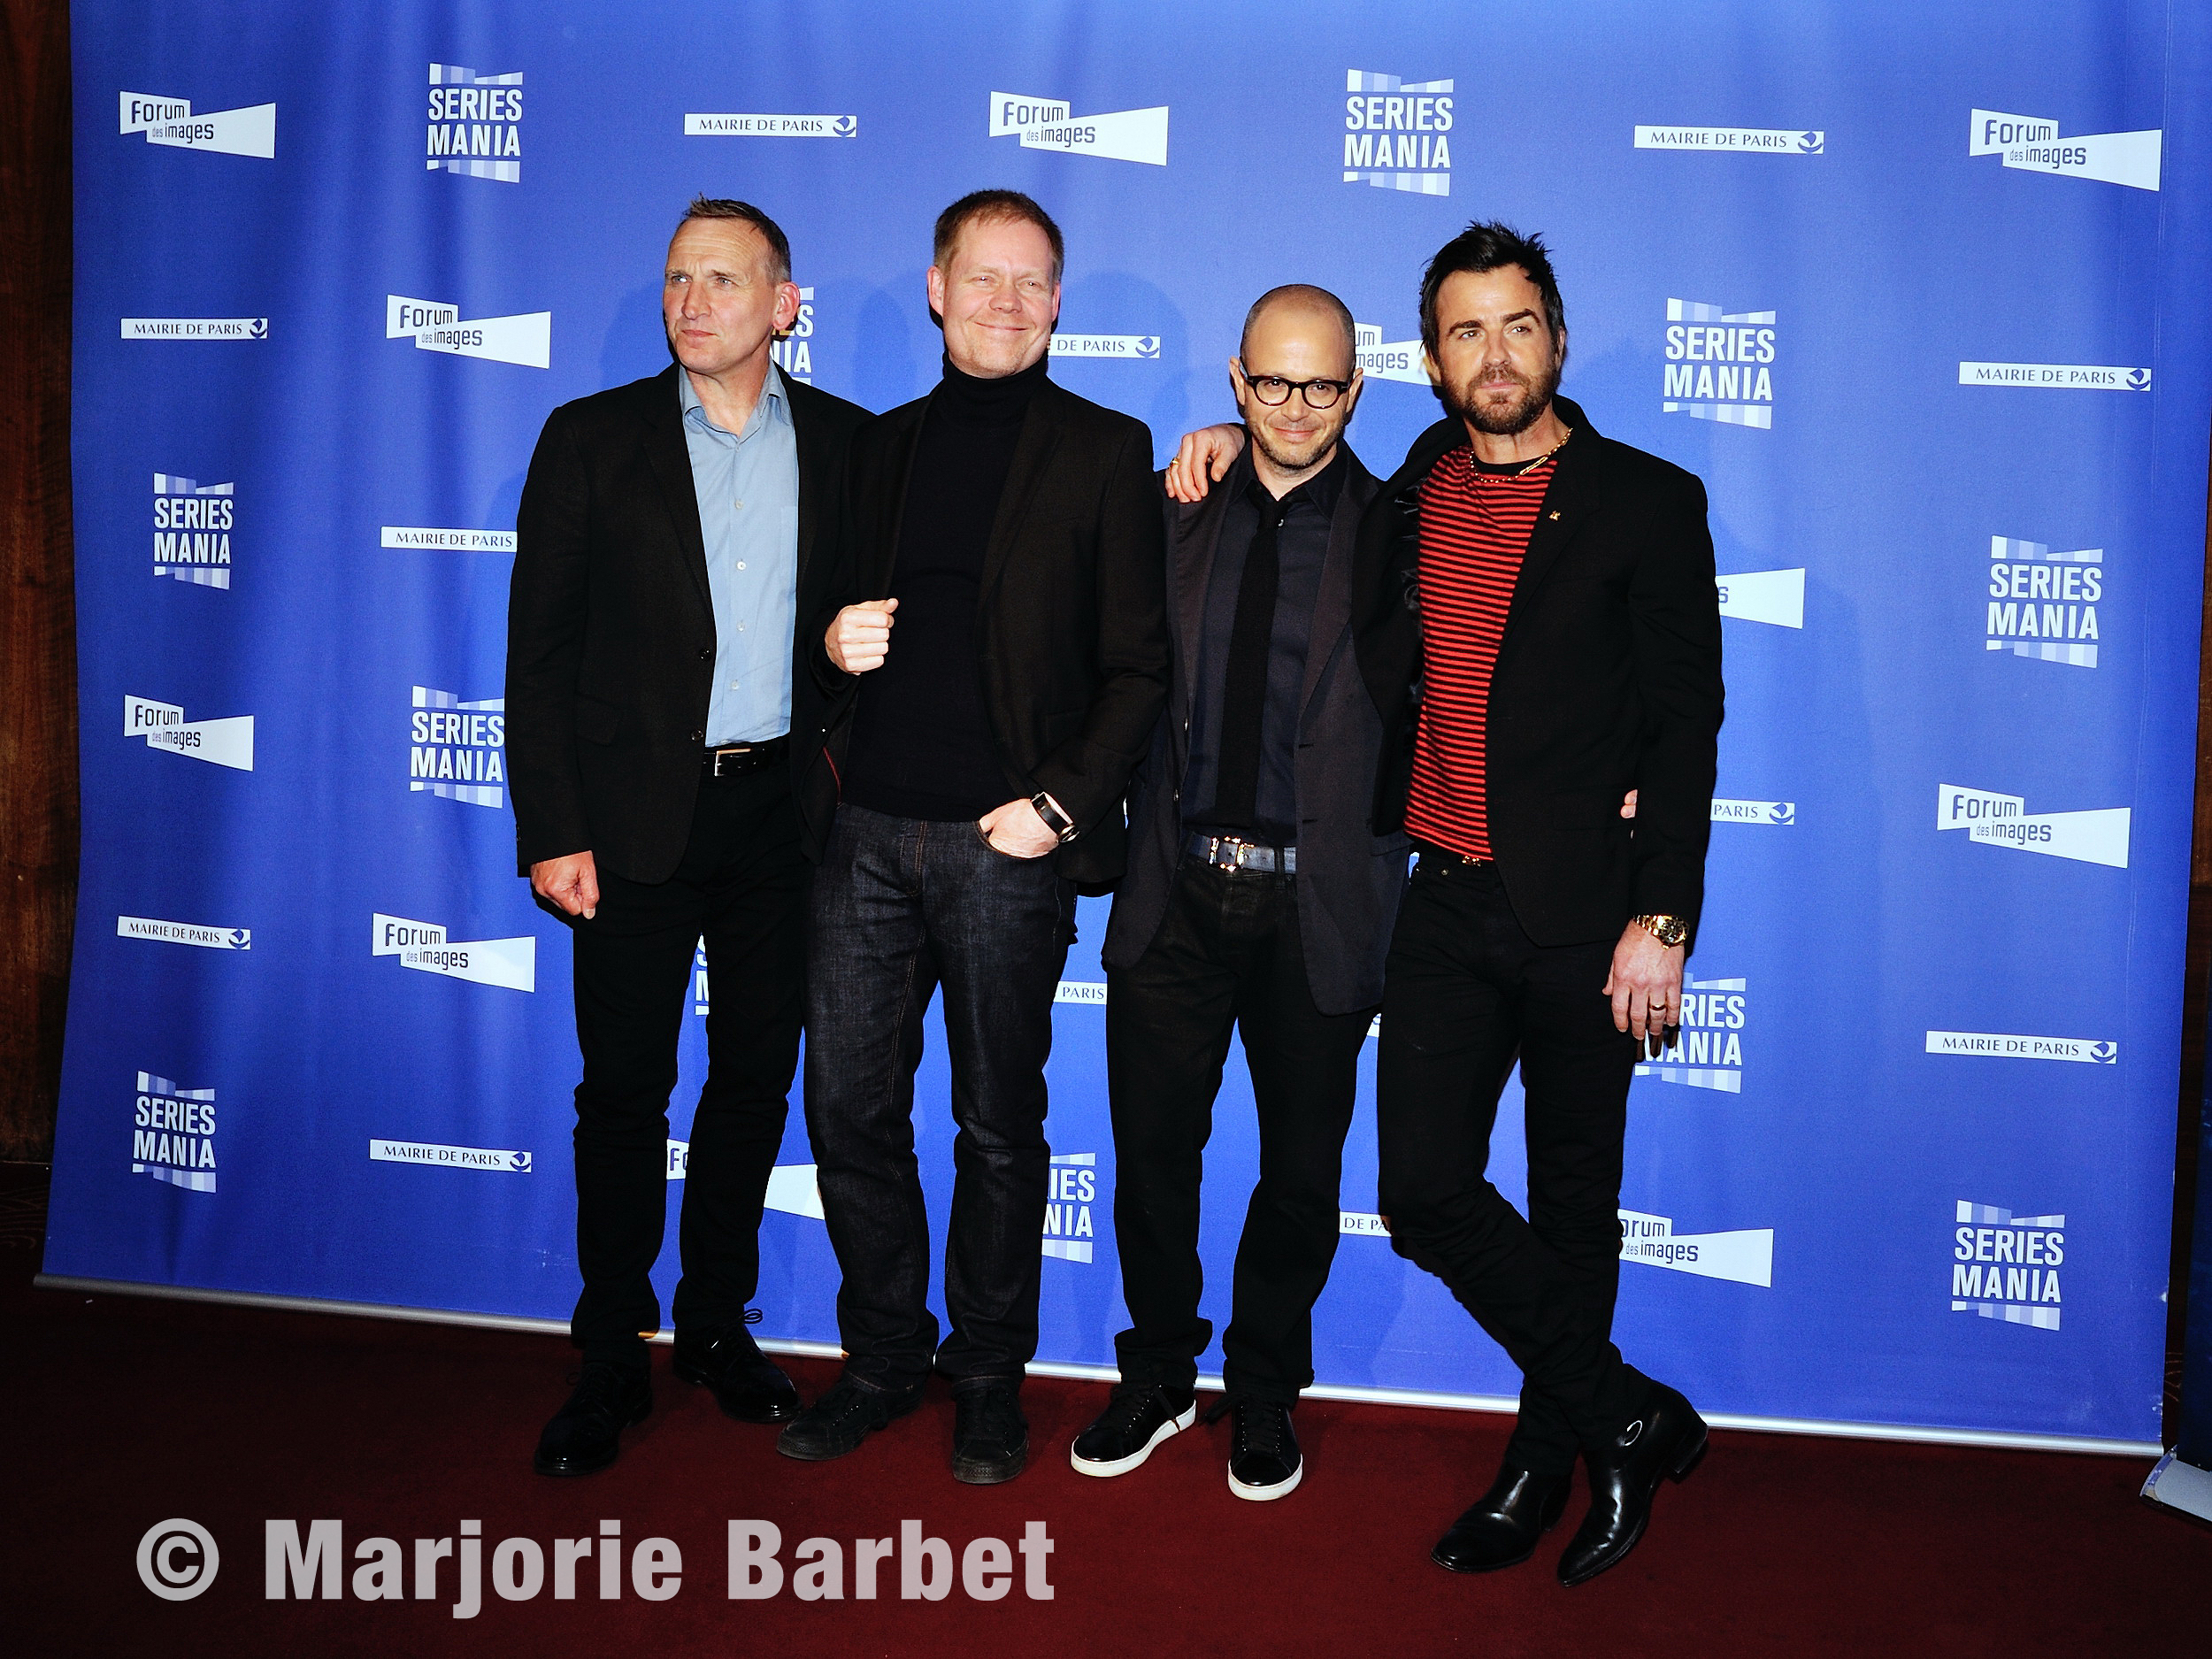 justin-theroux-damon-lindelof-max-richter-christopher-eccleston